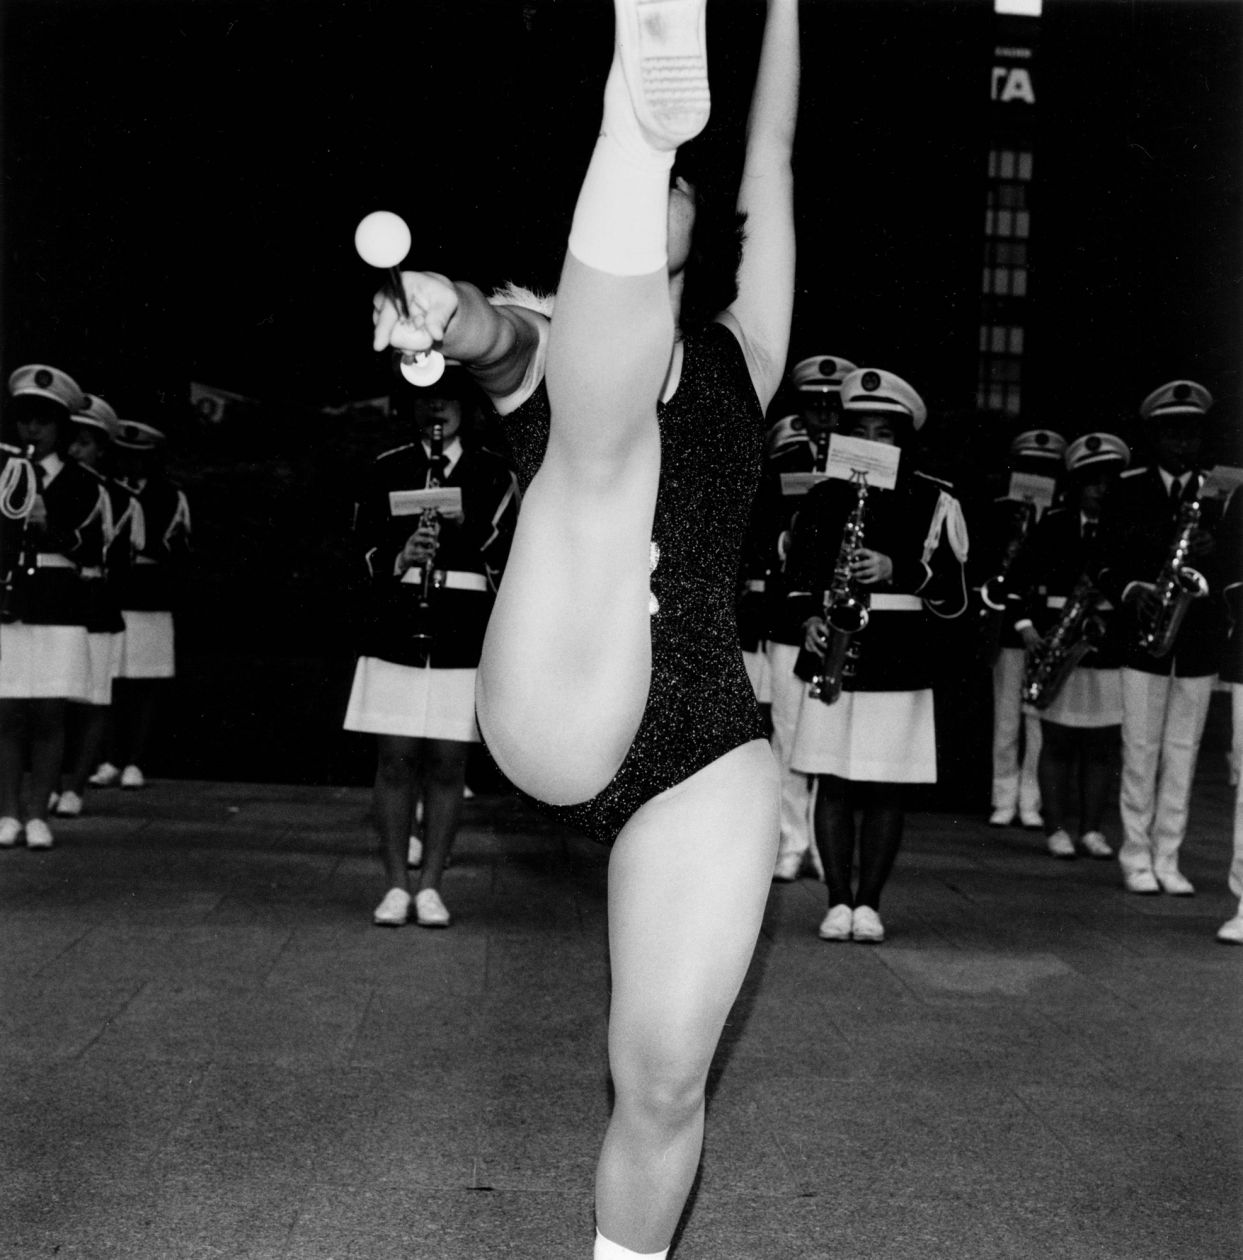 Untitled (Majorette) (Late 1970s - 1981) by Issei Suda